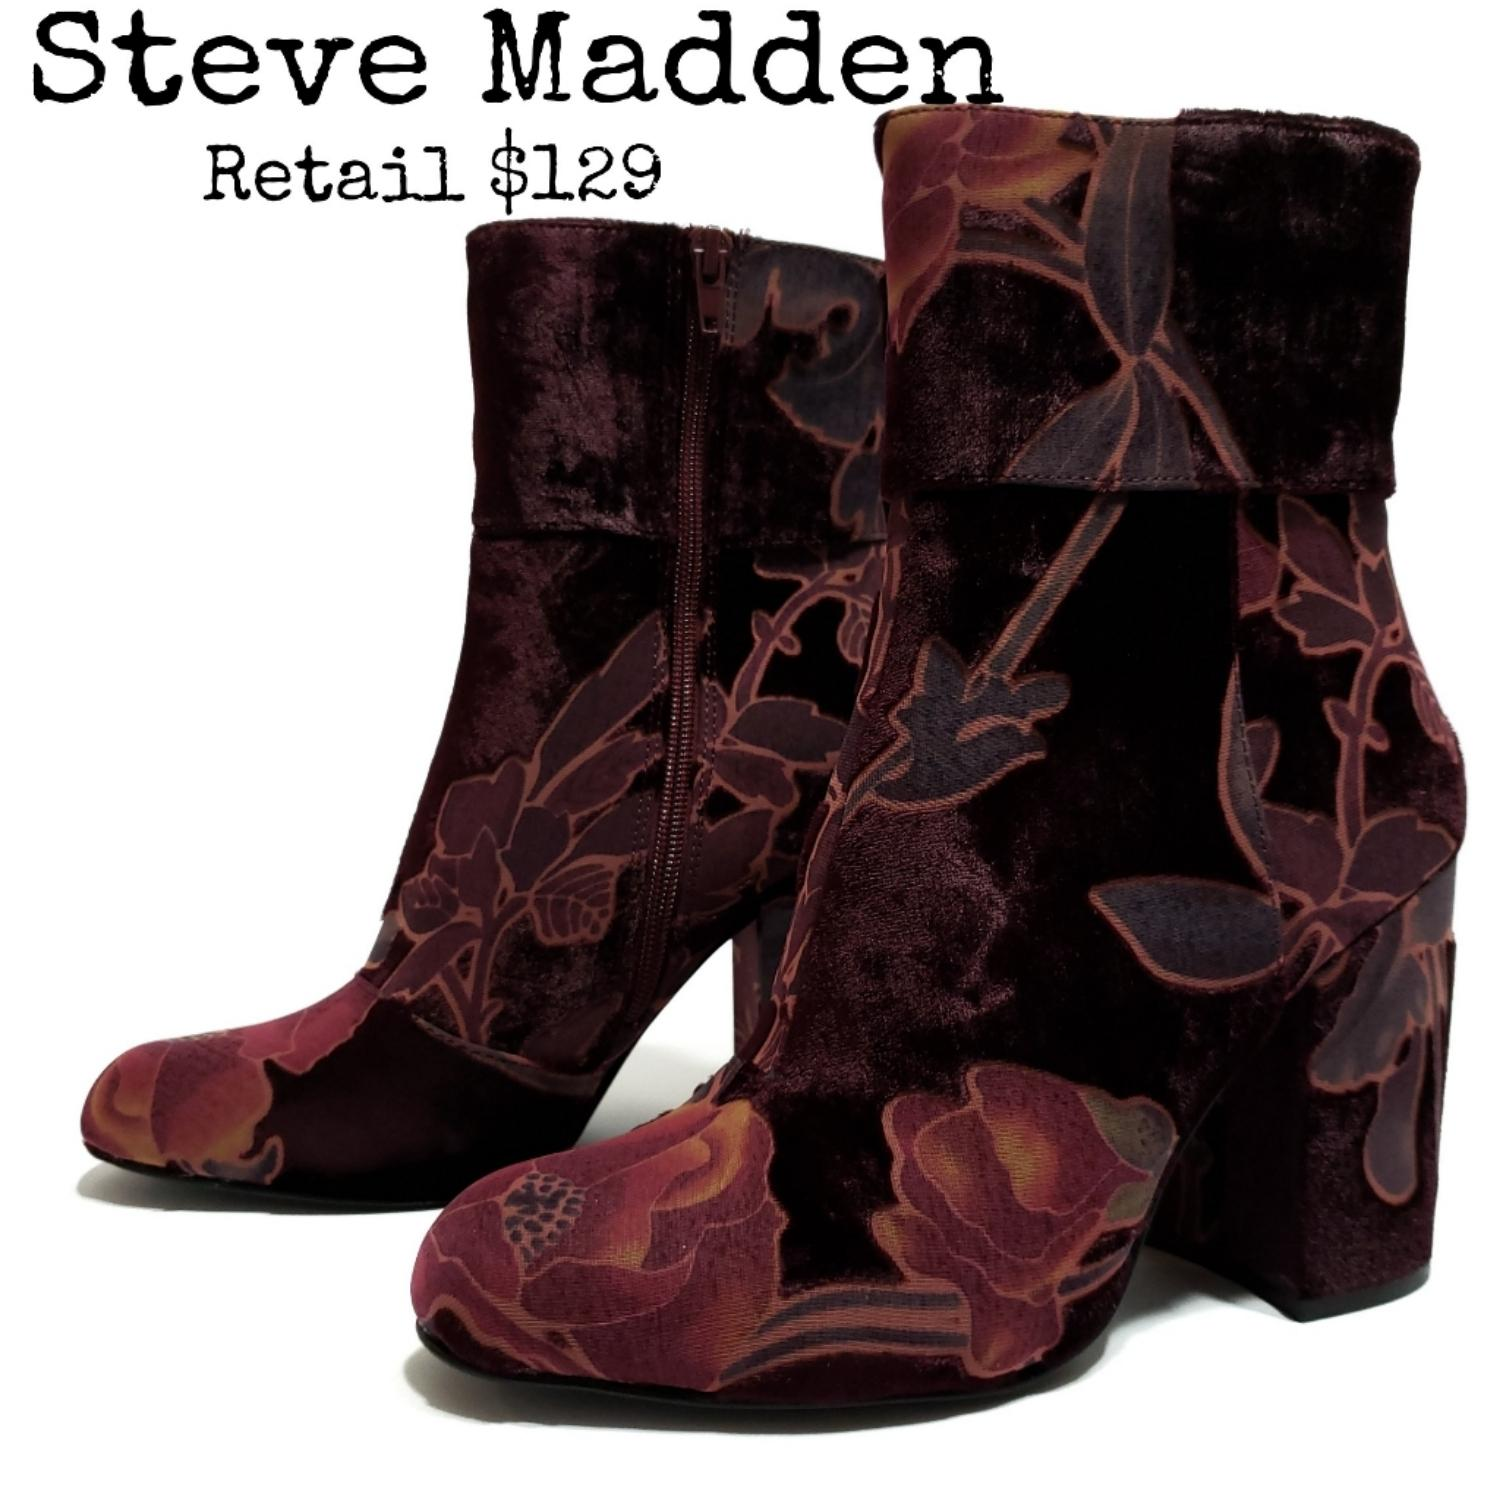 Steve Madden Burgundy Multicolored Goldie Block Heel Mid Boots/Booties Size B) US 8.5 Regular (M, B) Size d377bd